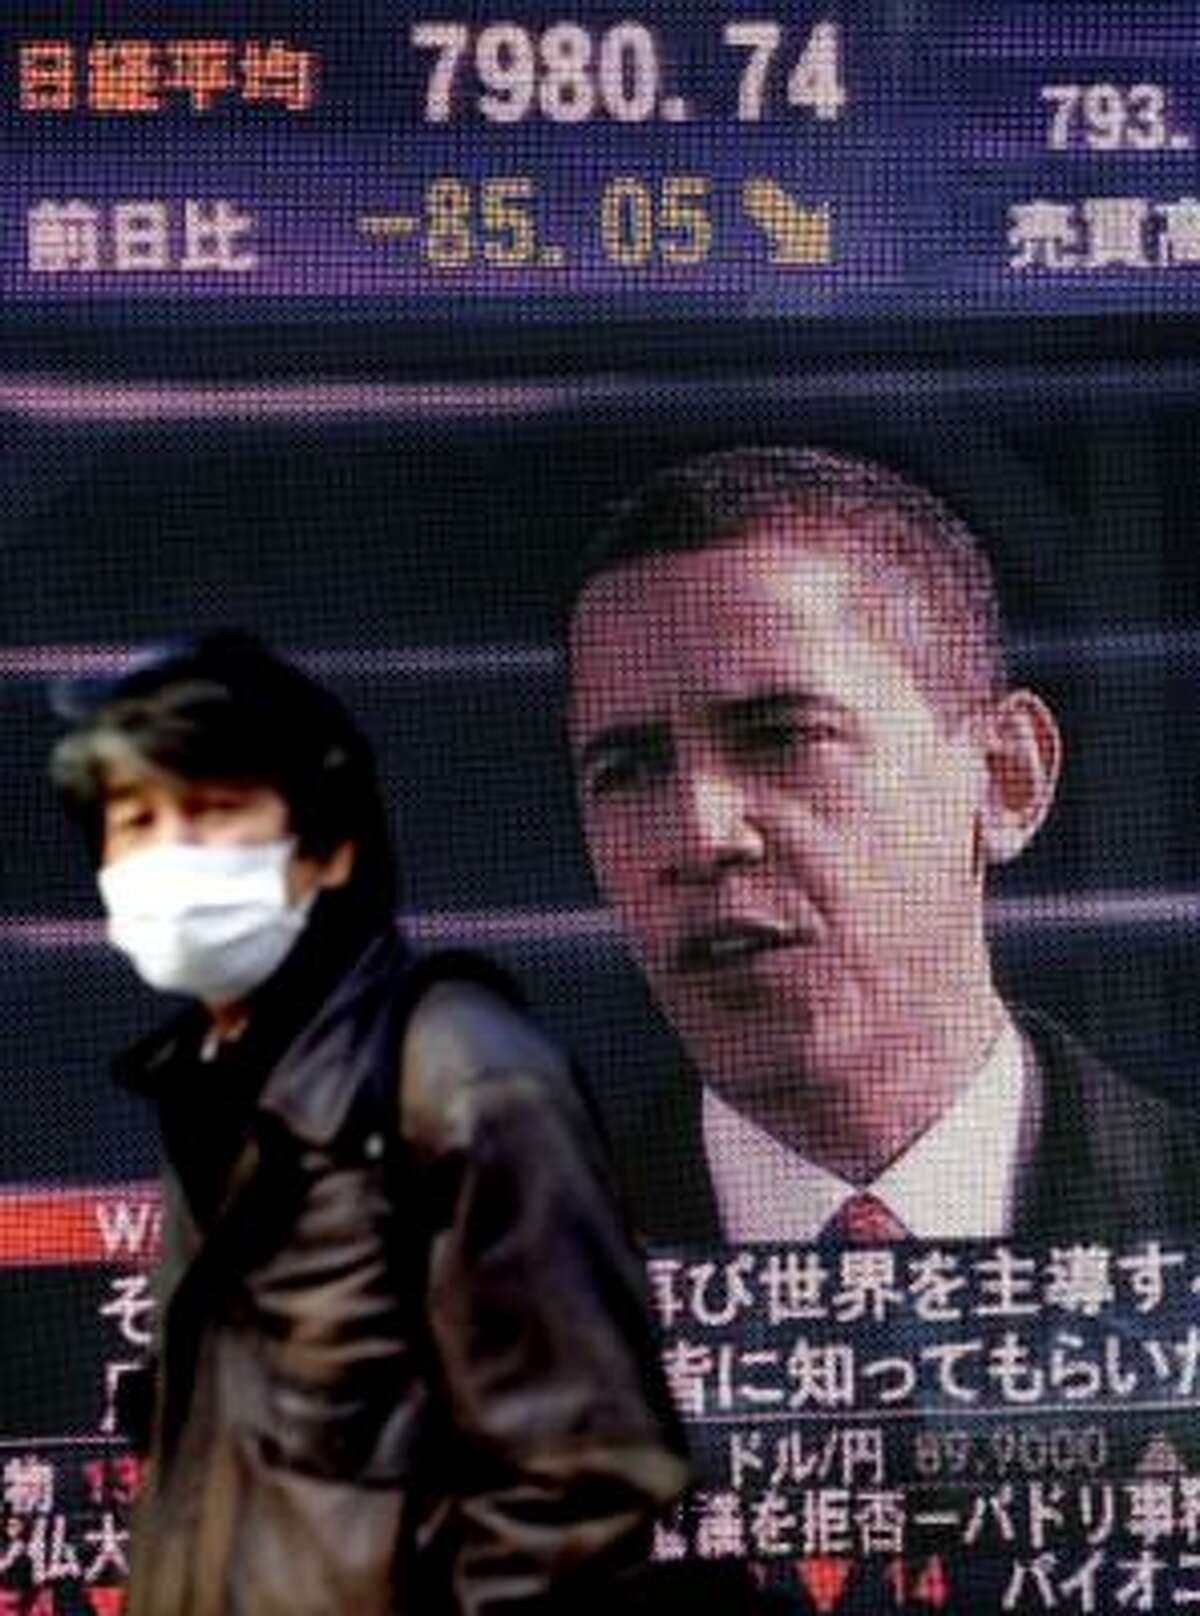 A man walks past an electronic stock board in Tokyo, Japan, indicating the Japanese stock dropped Jan. 21 while showing U.S. President Barack Obama at the inauguration ceremony in Washington.